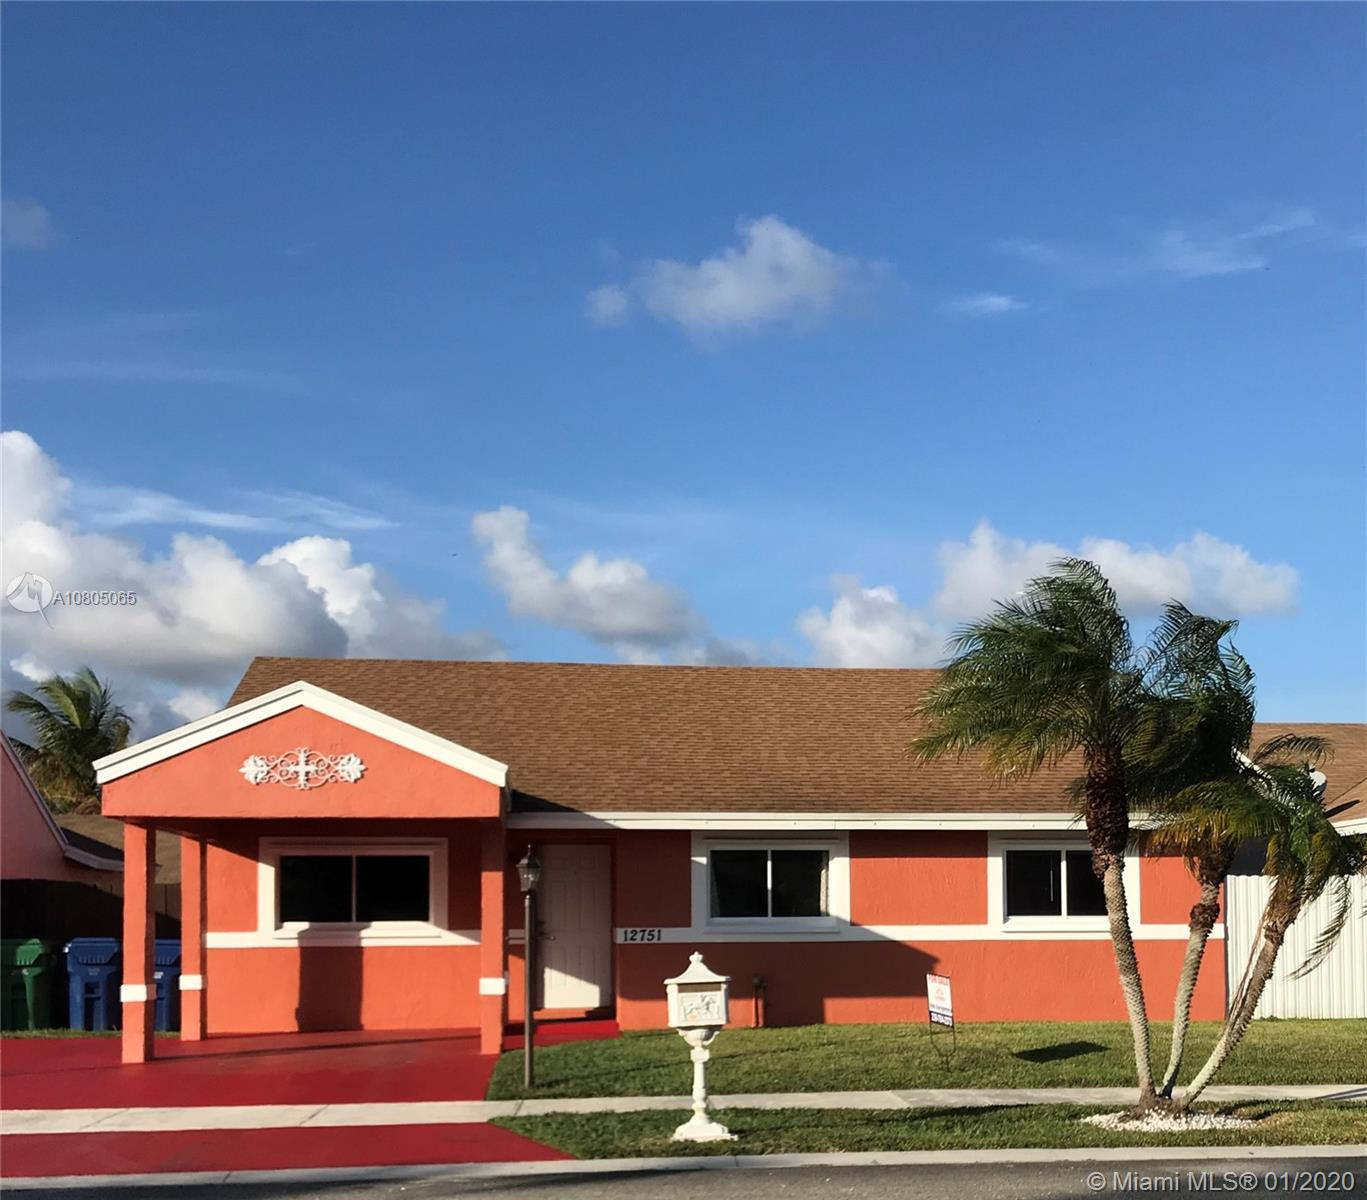 12751 SW 257th St, Homestead, FL 33032 - Homestead, FL real estate listing